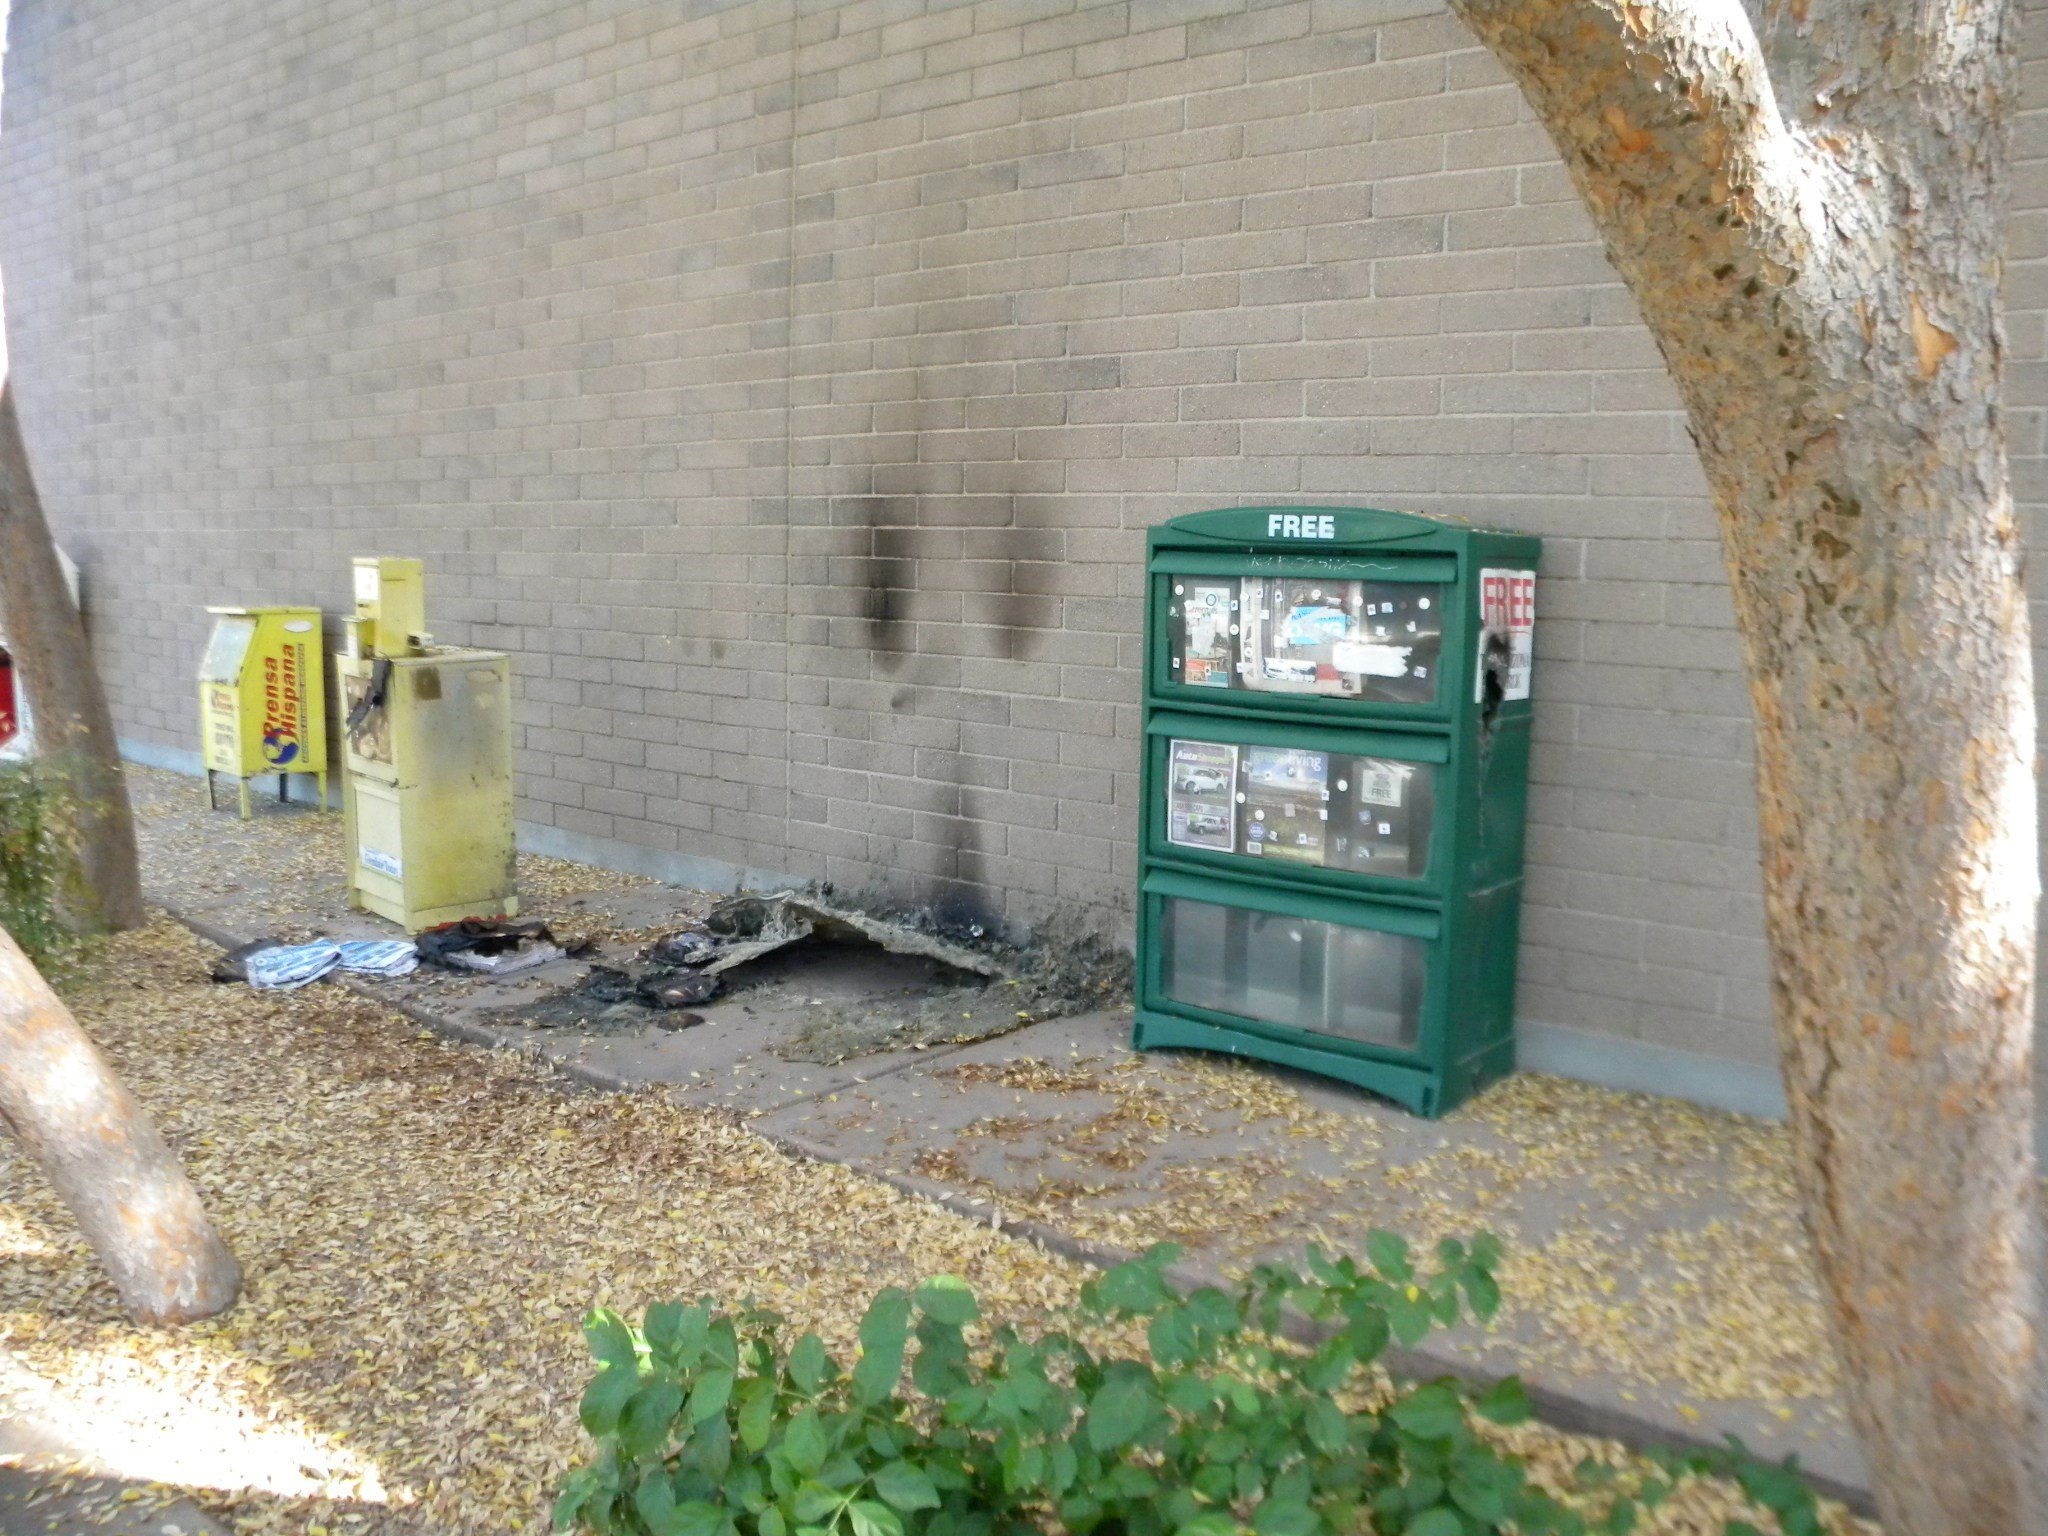 A newspaper holder was lit on fire at about 9:30 p.m. Dec. 13. (Source: Glendale Police Dept.)